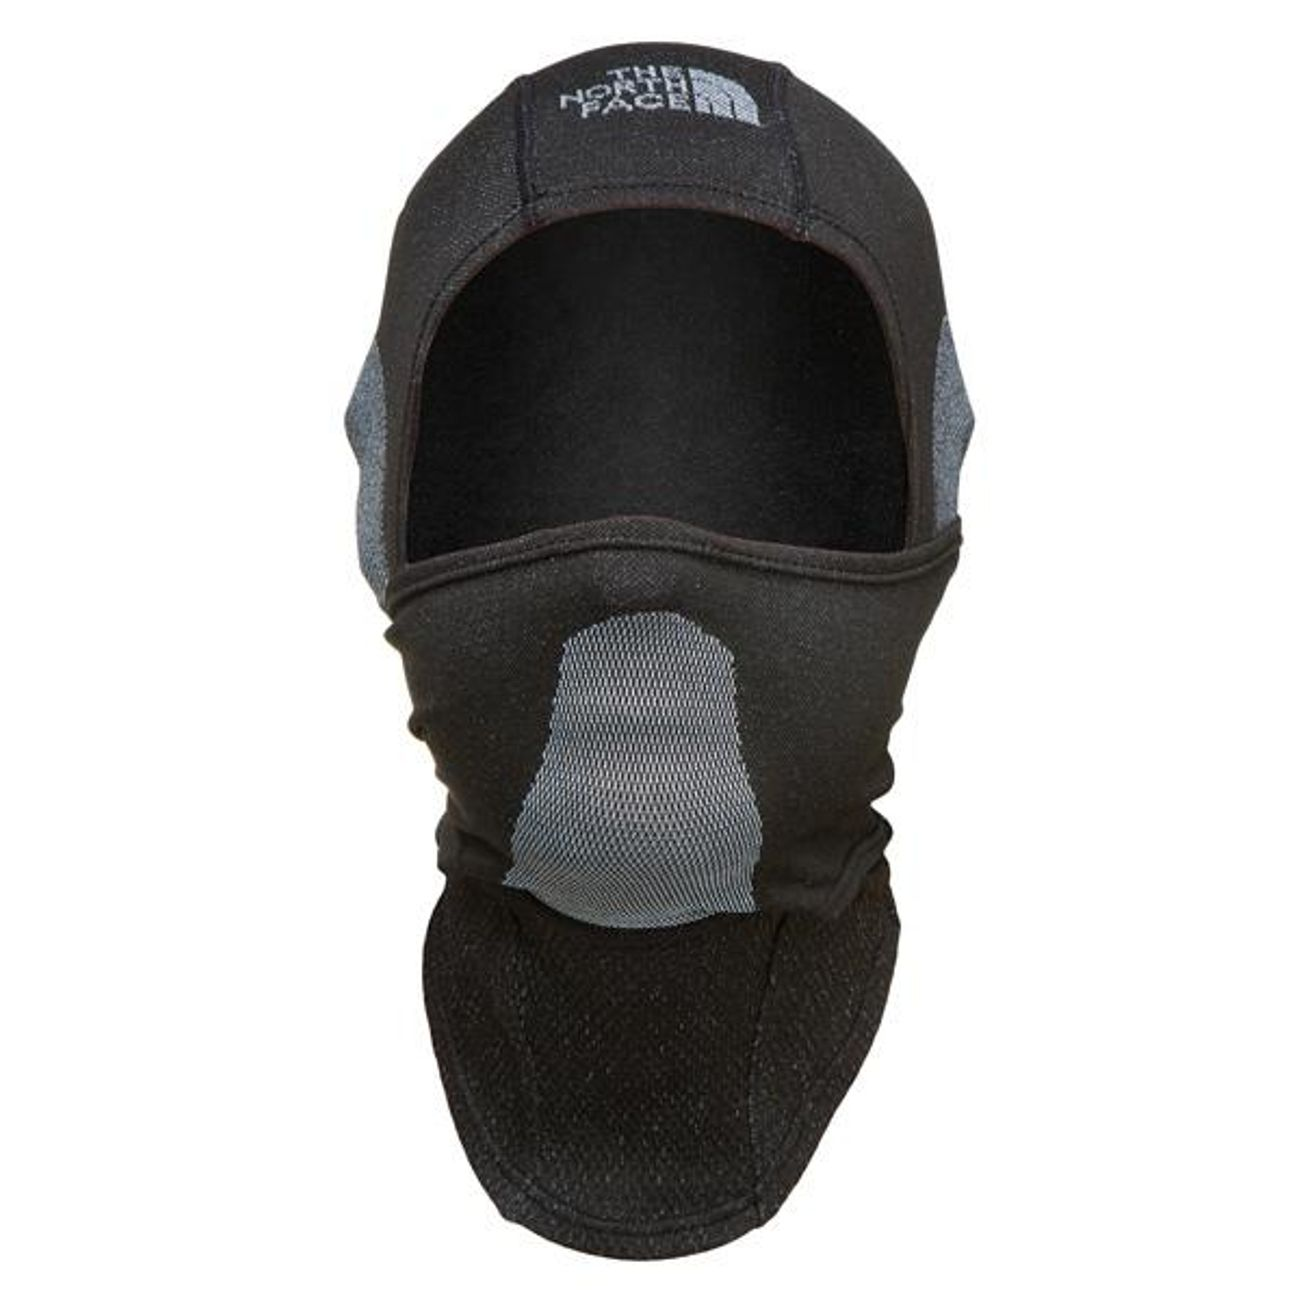 3147464227 montagne homme THE NORTH FACE The North Face Under Helmet Balaclava ...